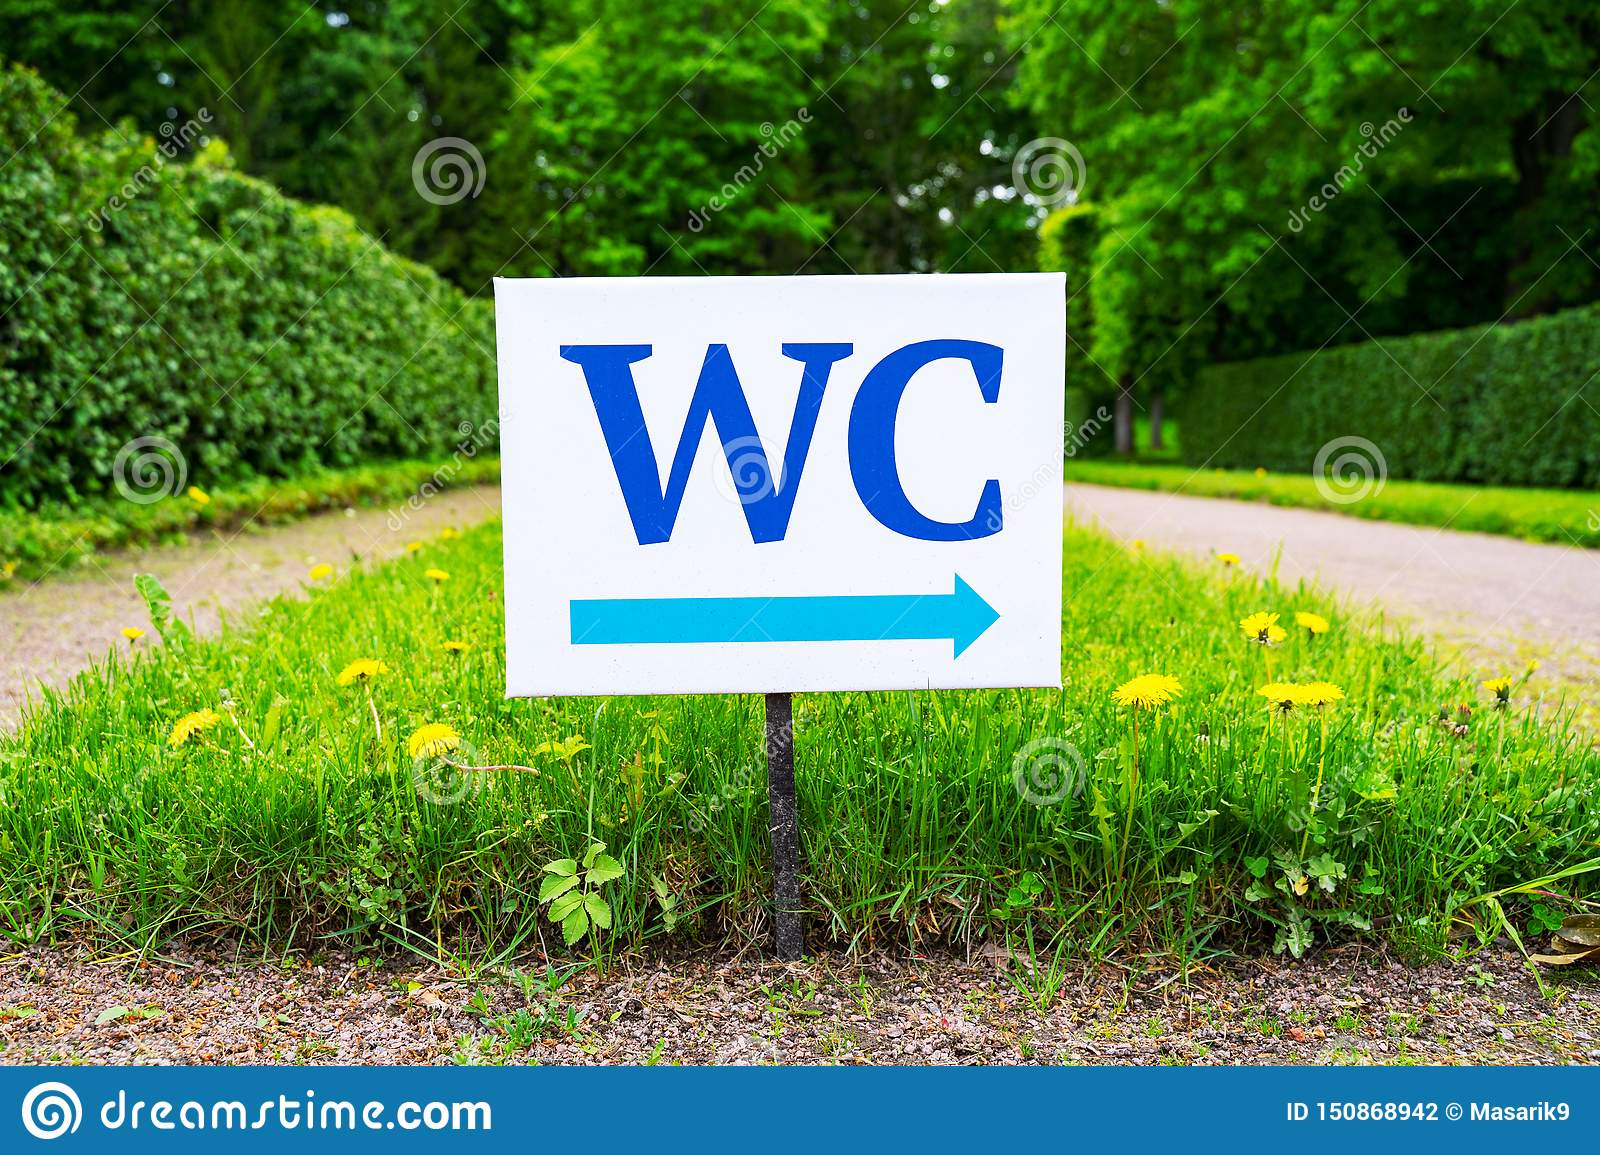 Toilet sign against the background of green trees in the park. White WC sign on white metal plate with blue pointing arrow indica